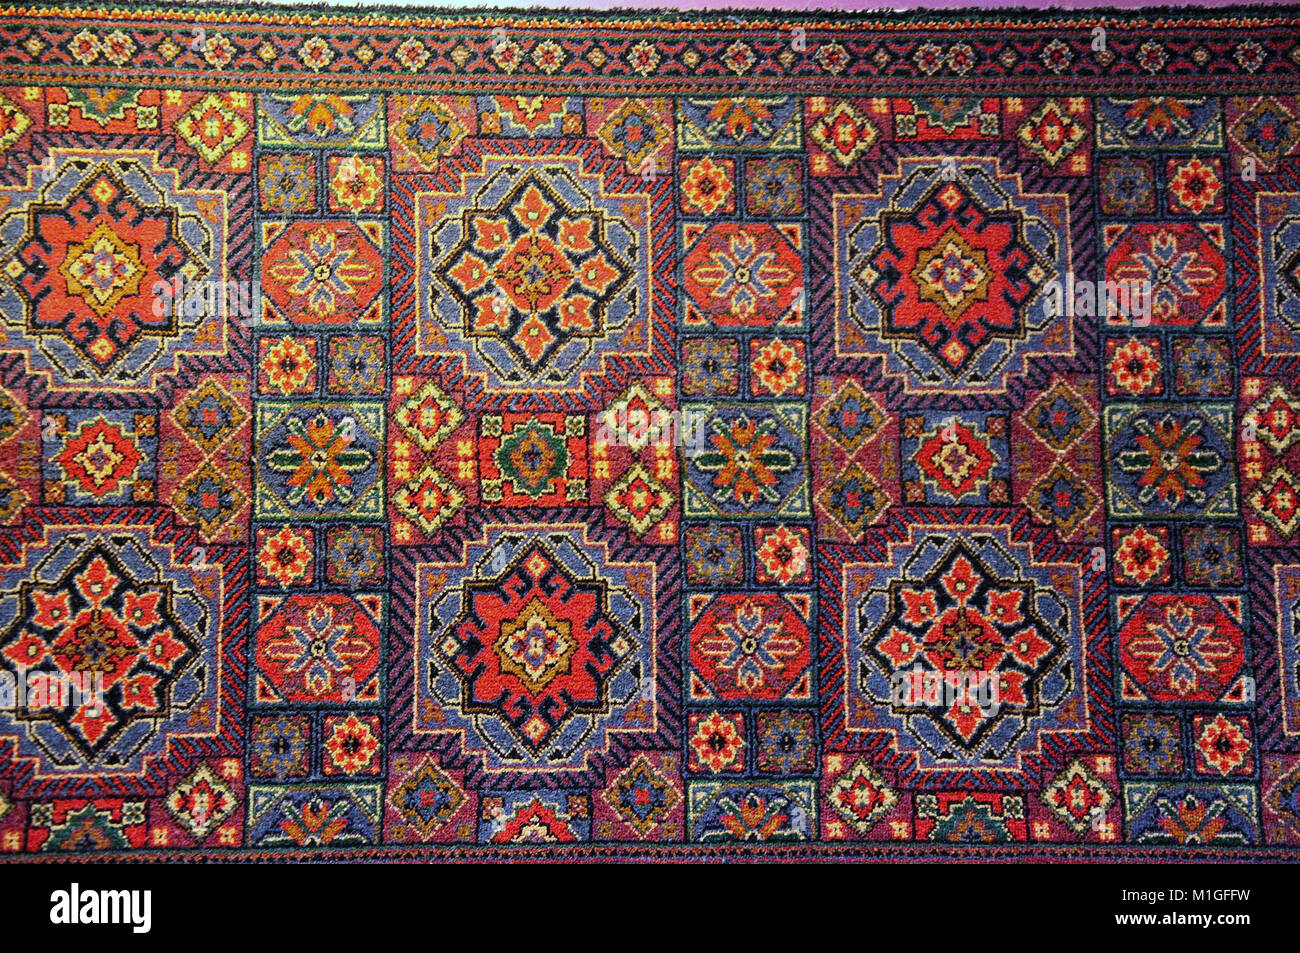 Persian Style Rug Stock Photos Amp Persian Style Rug Stock